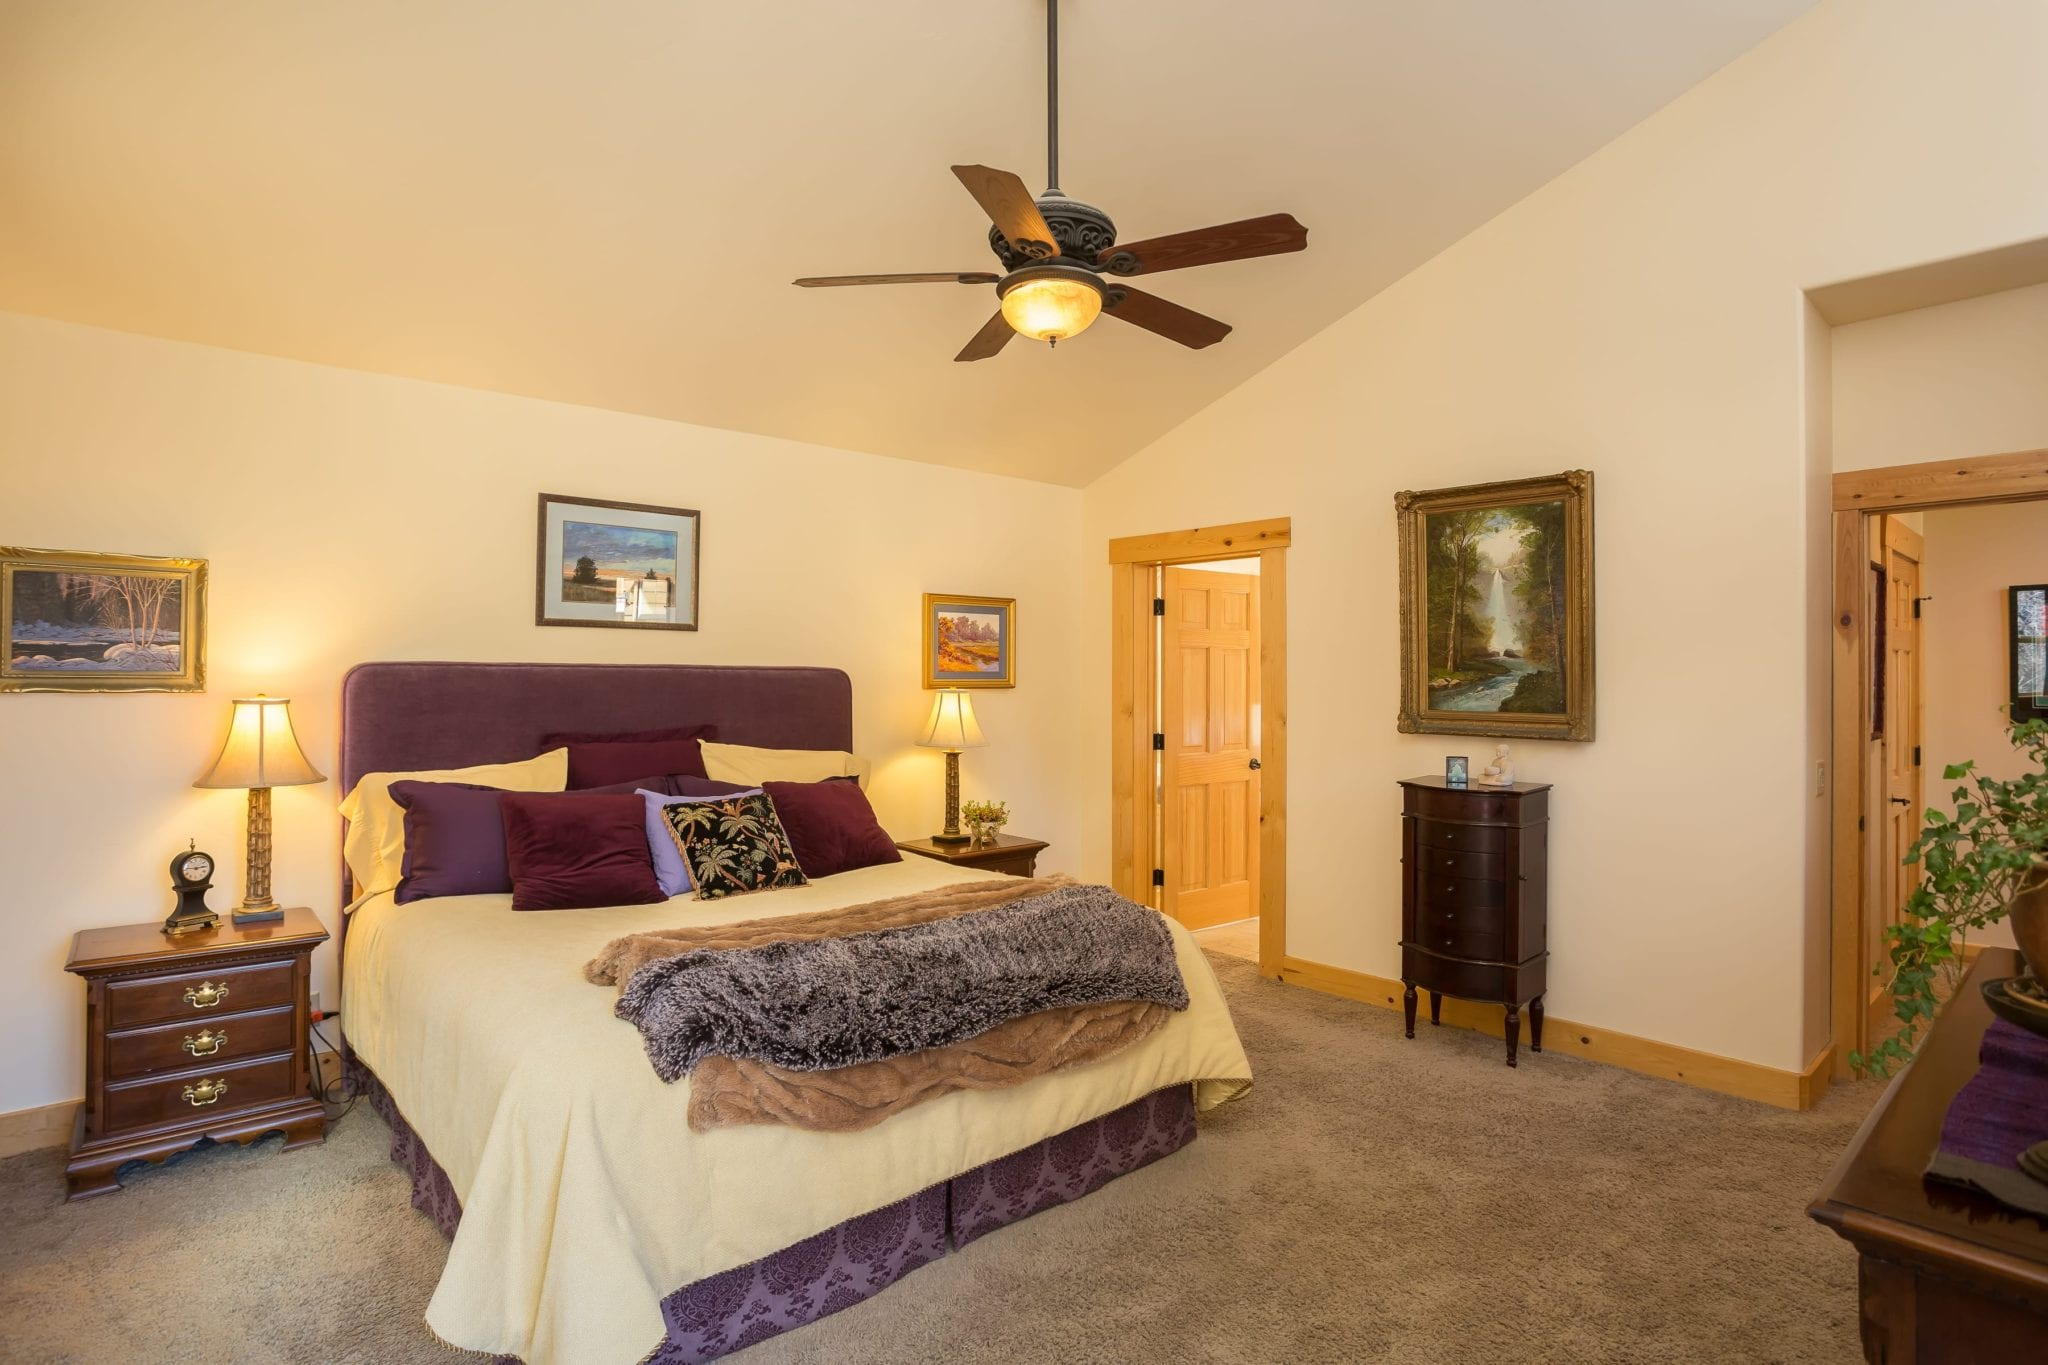 Professional Real Estate Photos Change a Buyer's Perception